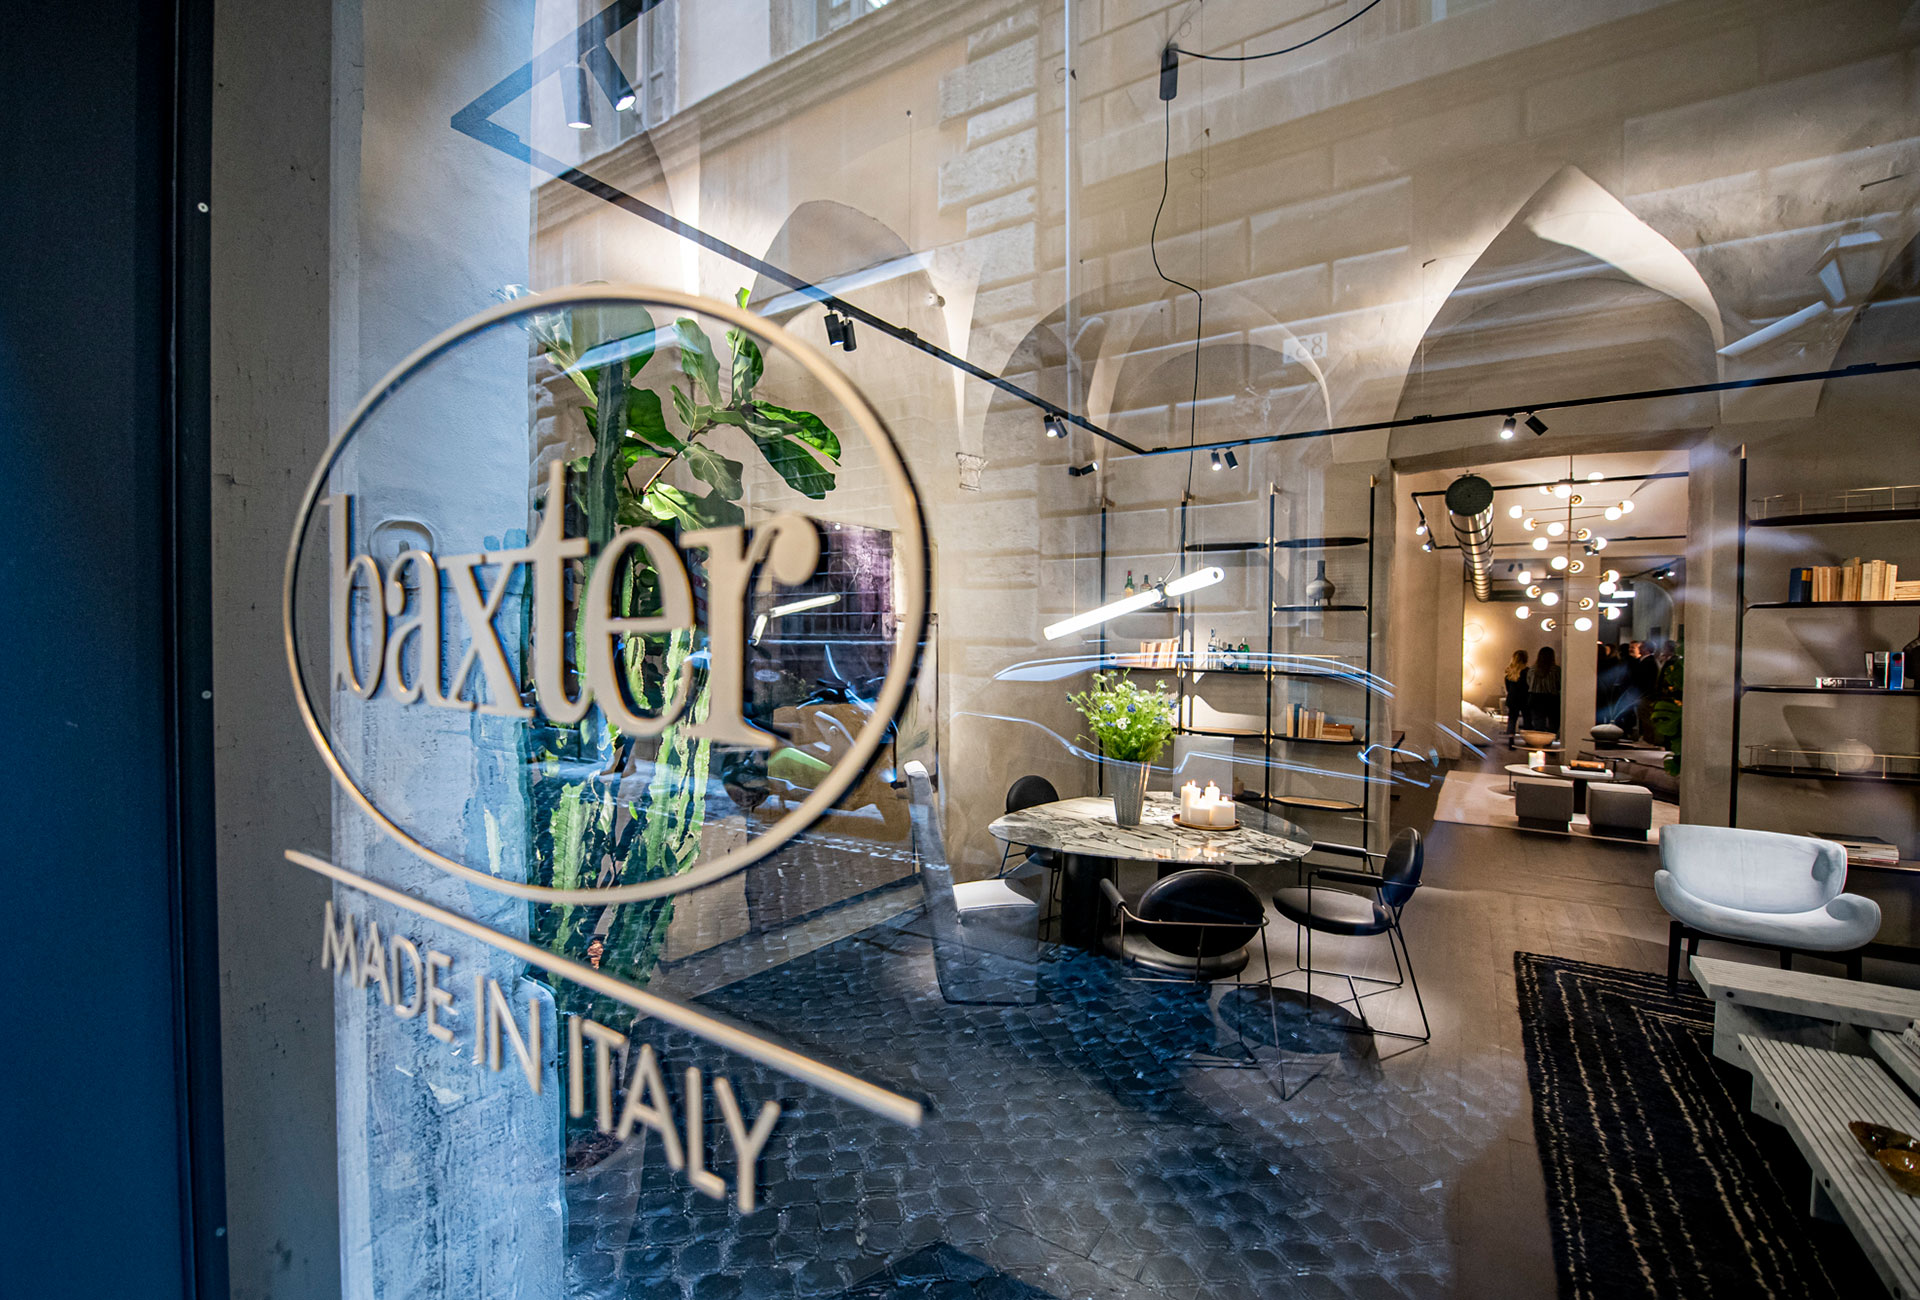 OPENING BAXTER ROMA